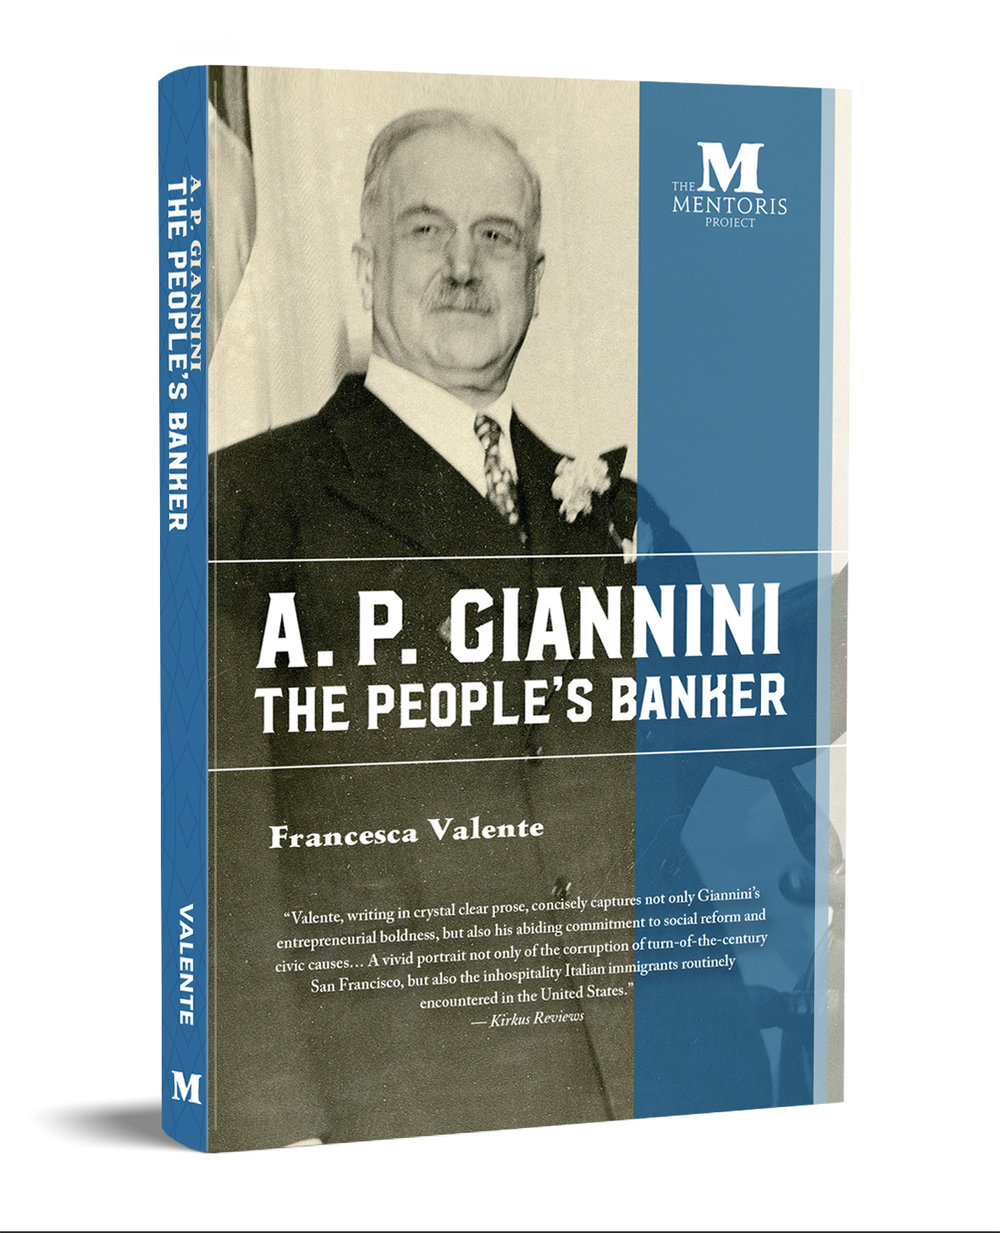 """Valente, writing in  crystal clear prose, concisely captures not only Giannini's entrepreneurial boldness, but also his abiding commitment to social reform and civic causes…A vivid portrait not only of the corruption of turn-of-the-century San Francisco, but also the inhospitality Italian immigrants routinely encountered in the United States."" — Kirkus Reviews"